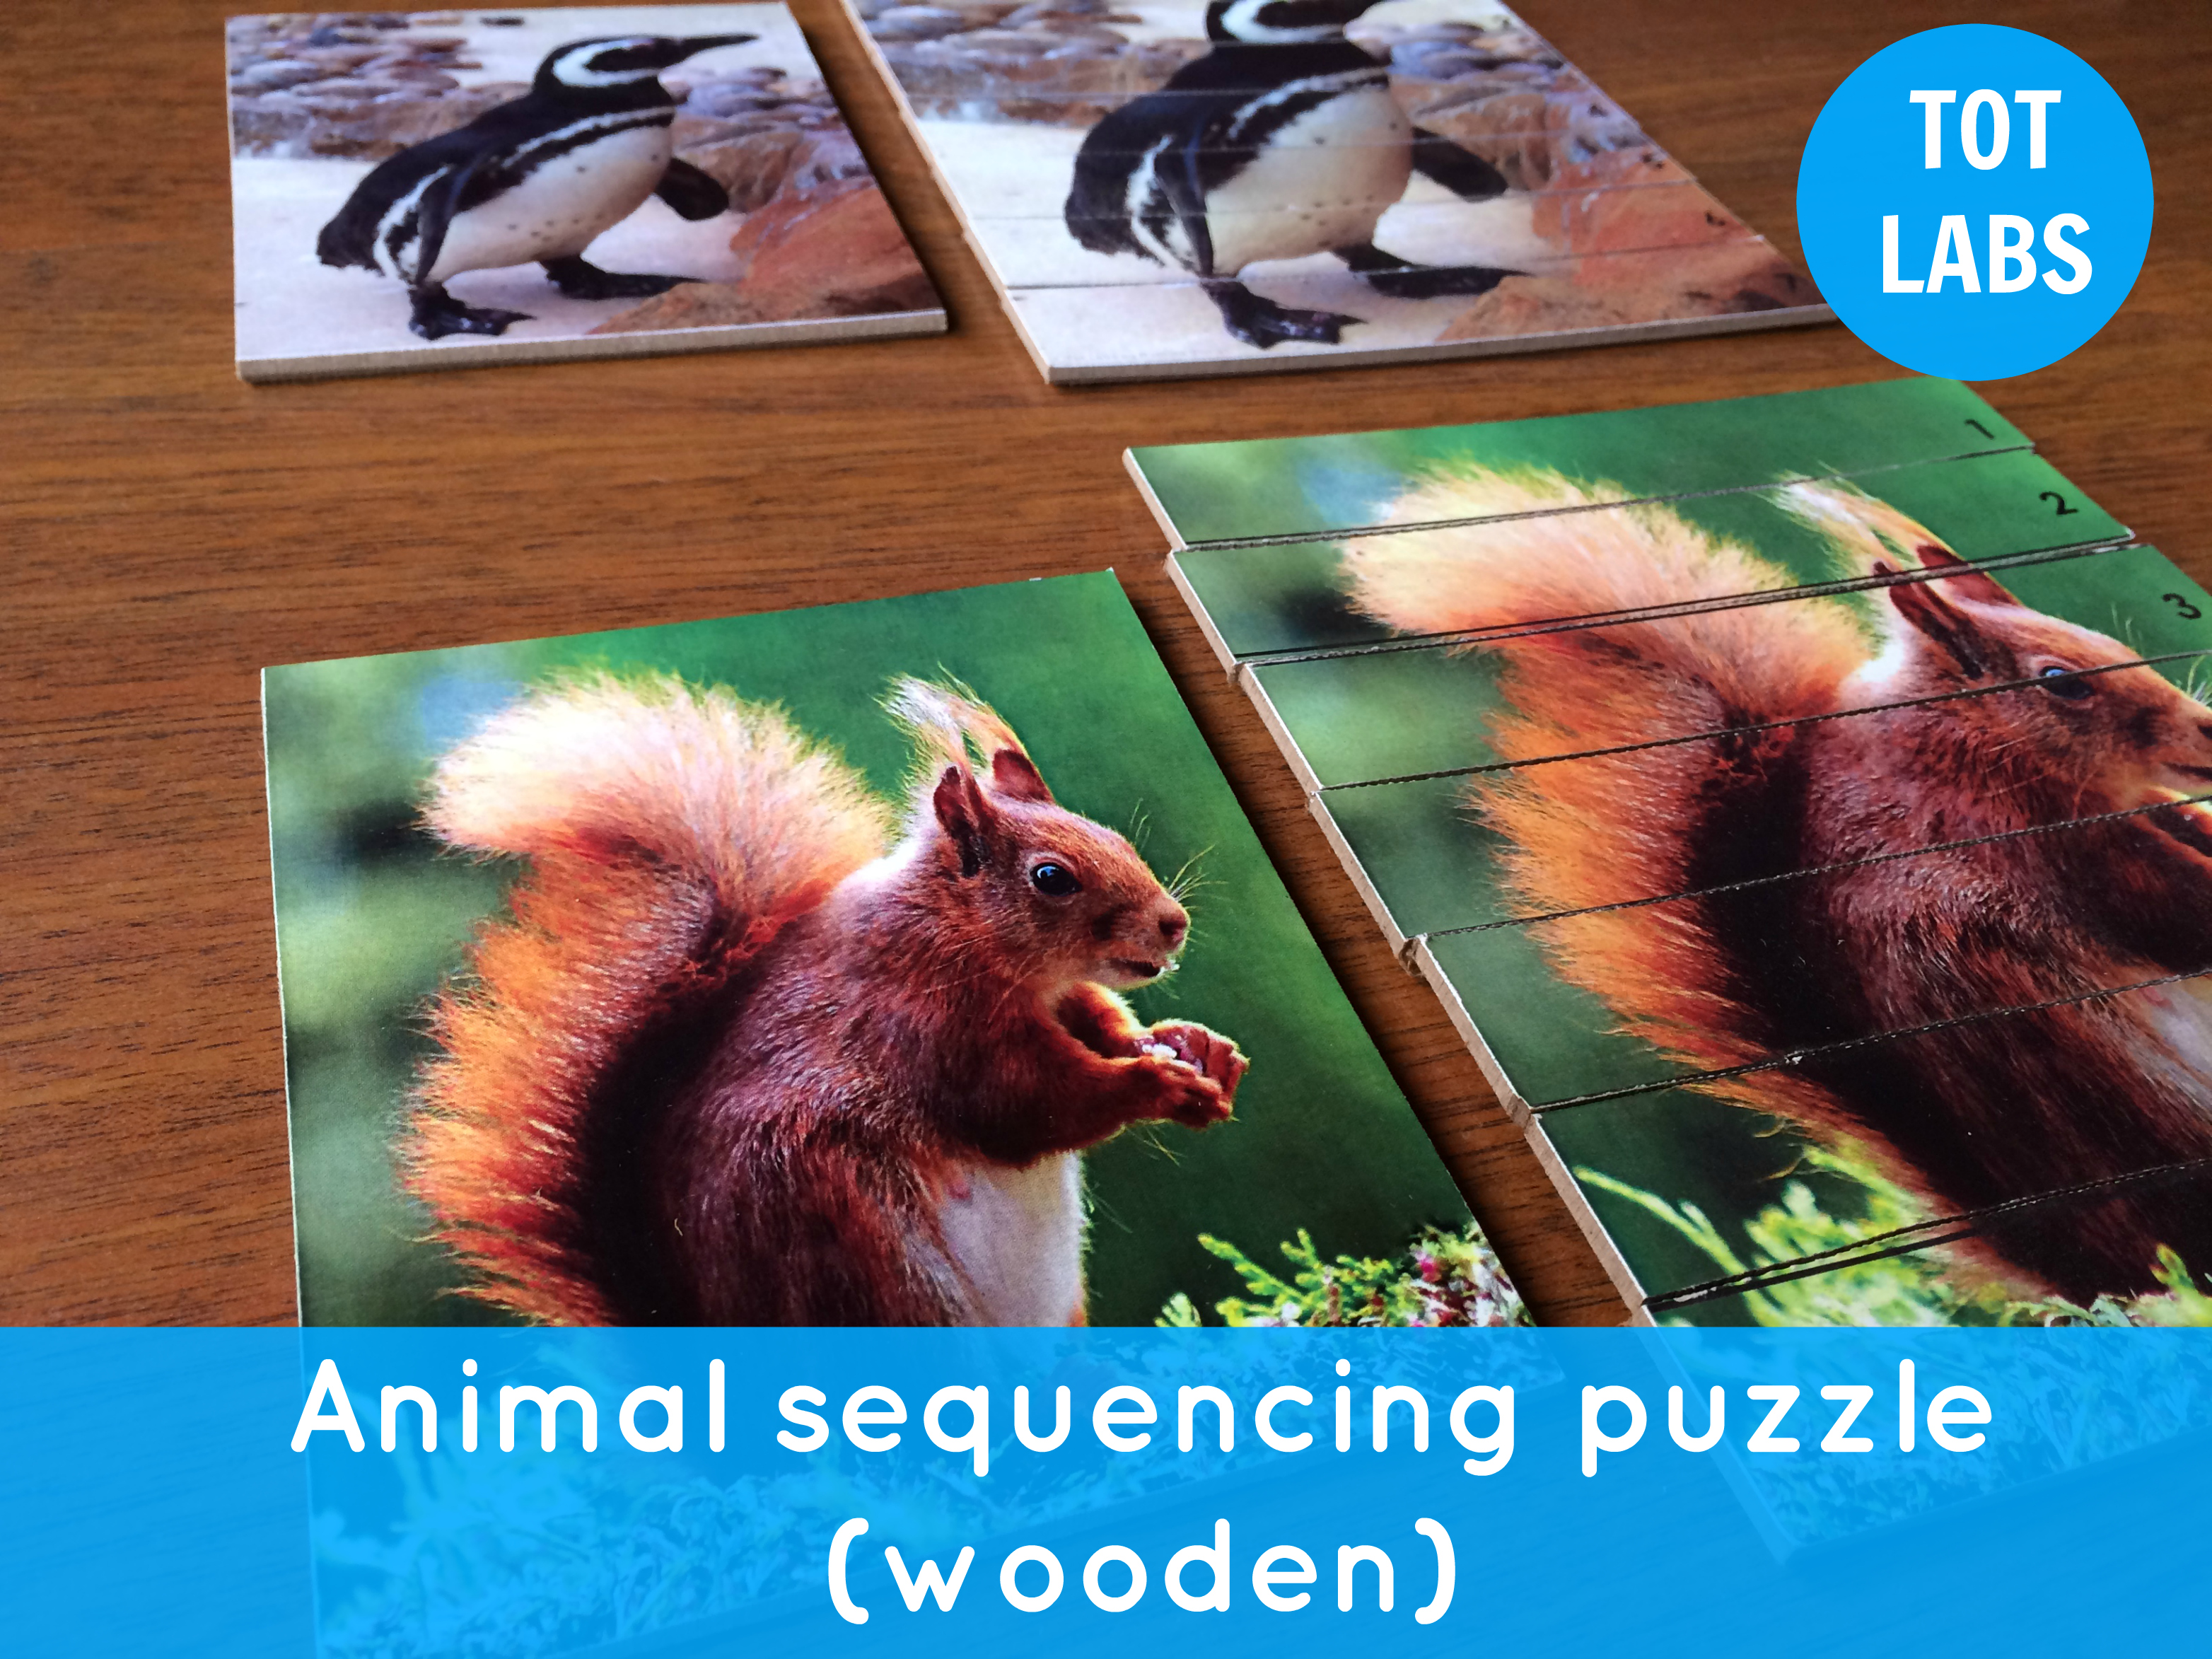 ANIMAL sequence puzzle